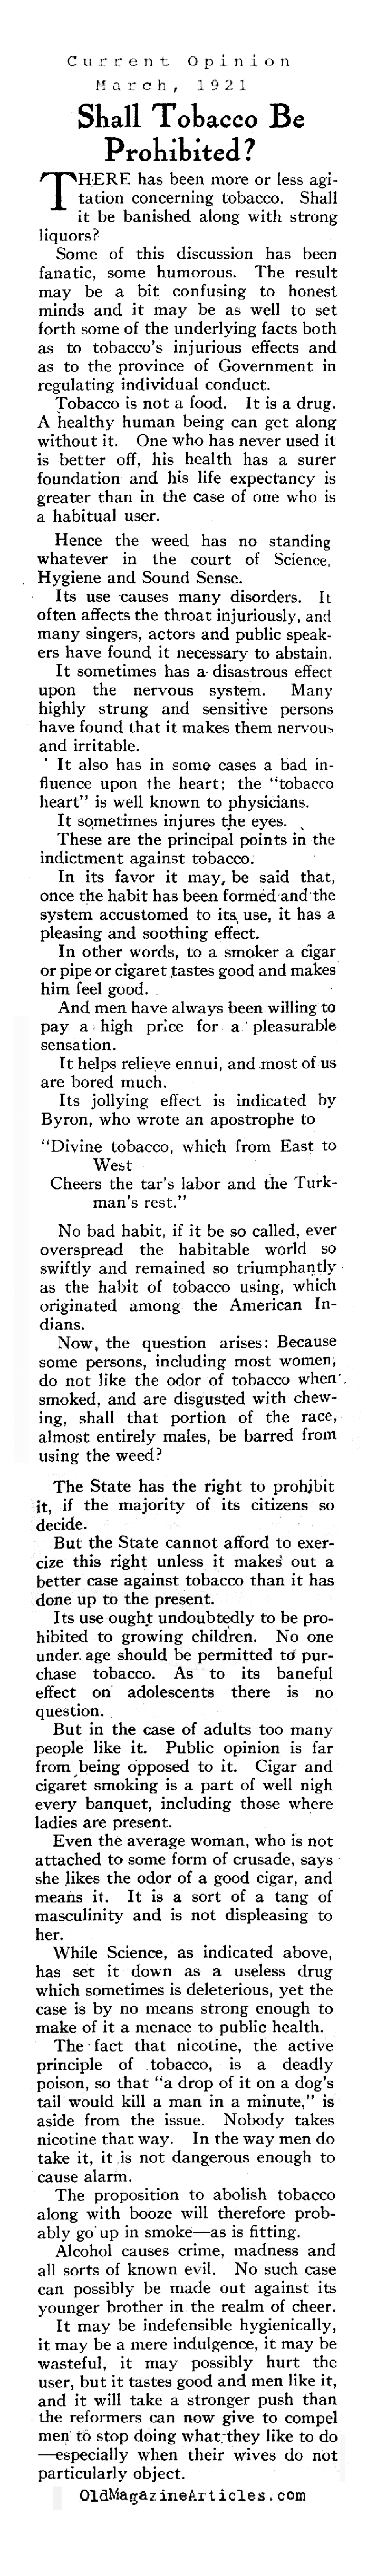 Shall Tobacco Be Prohibited, Too? (Current Opinion, 1921)